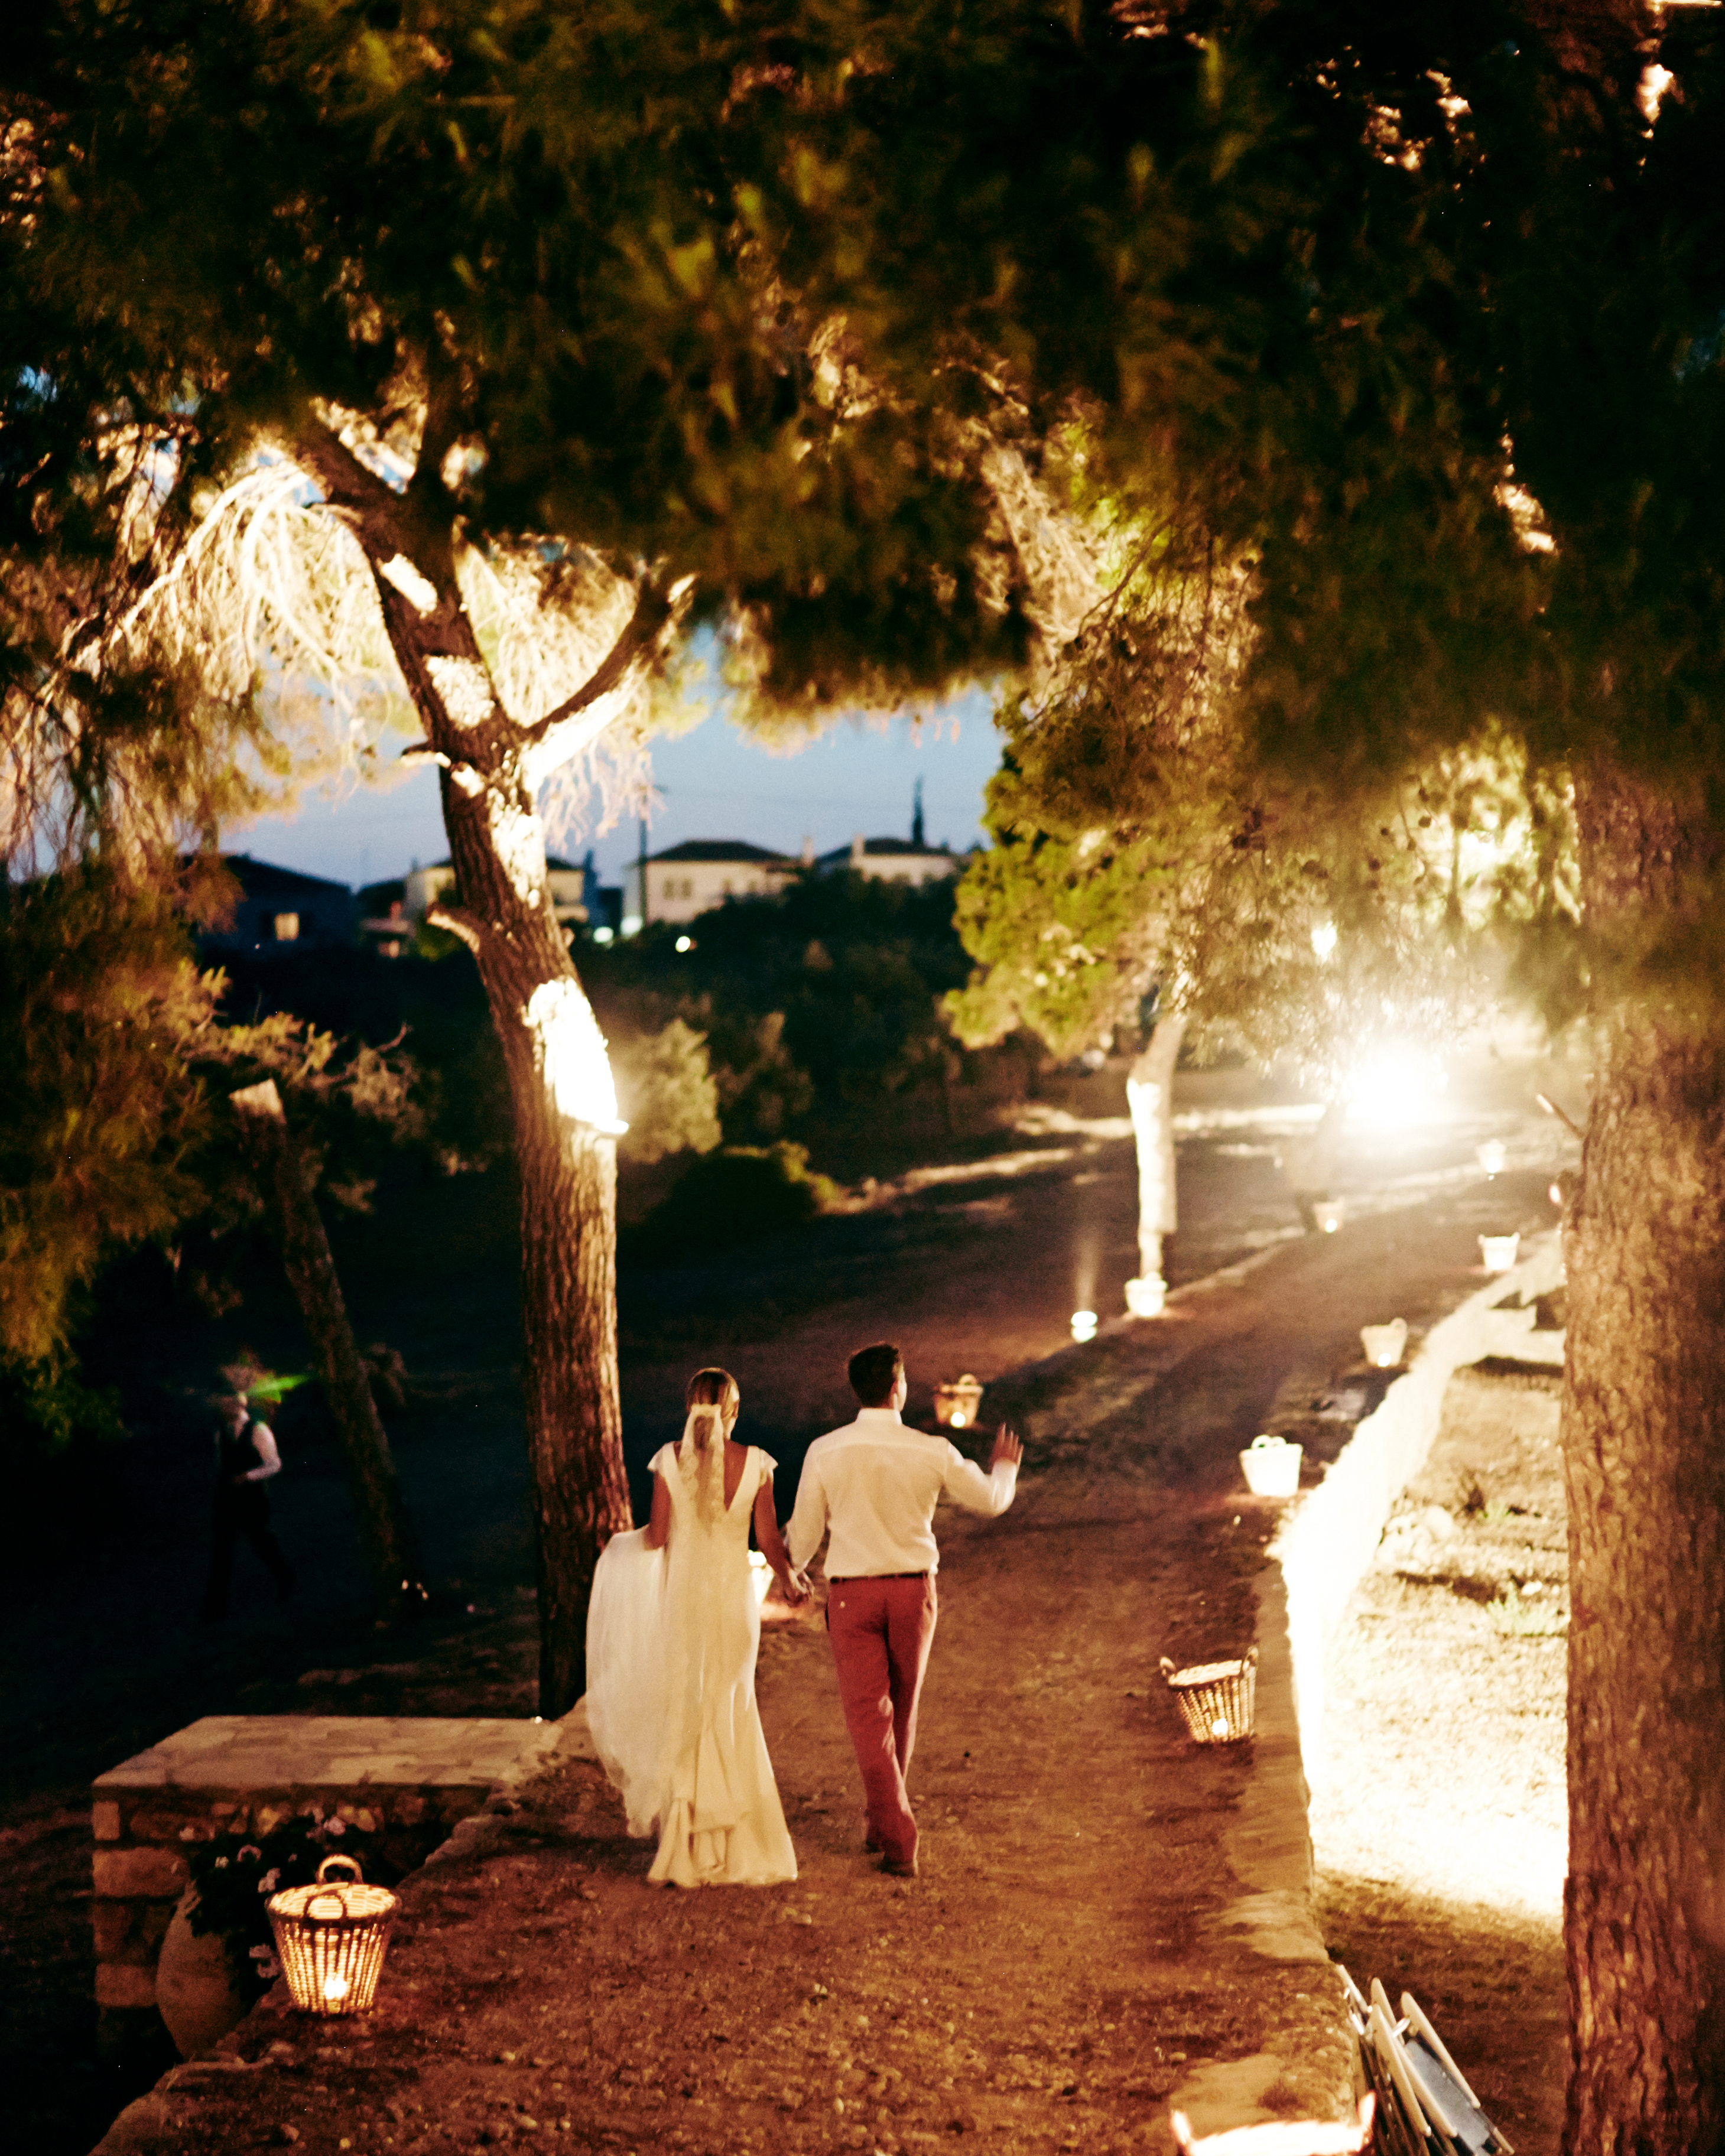 ana-alden-wedding-greece-611a5034-s111821.jpg